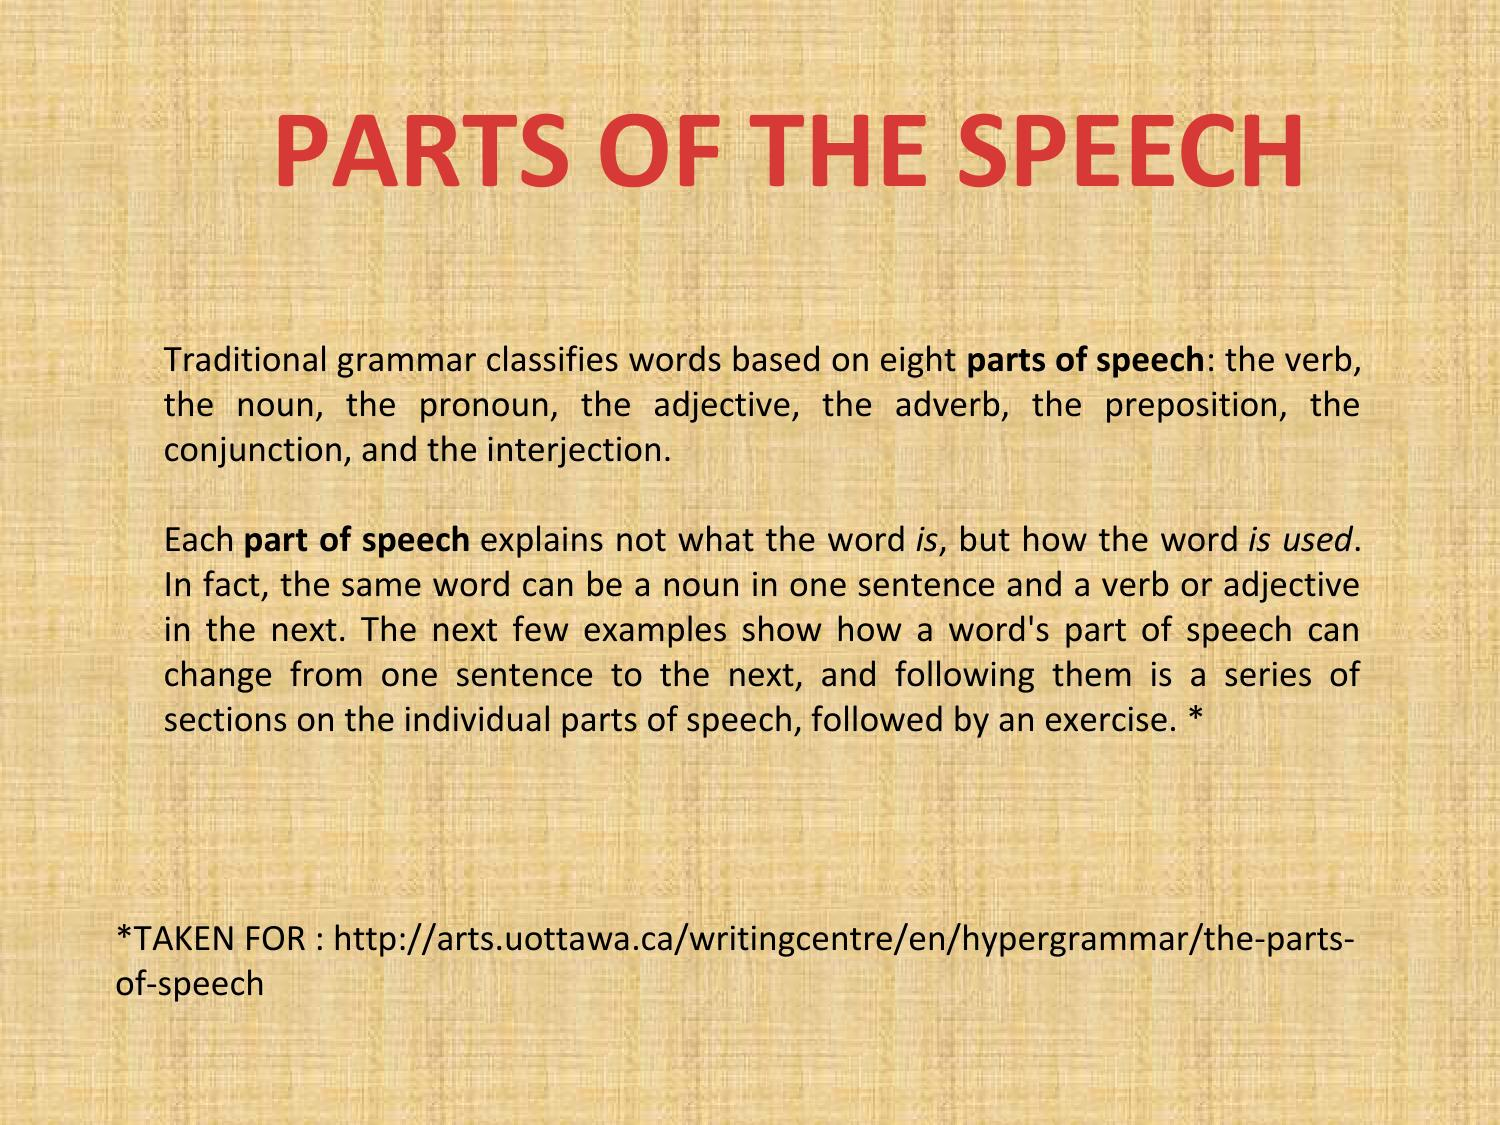 Why - which part of the speech